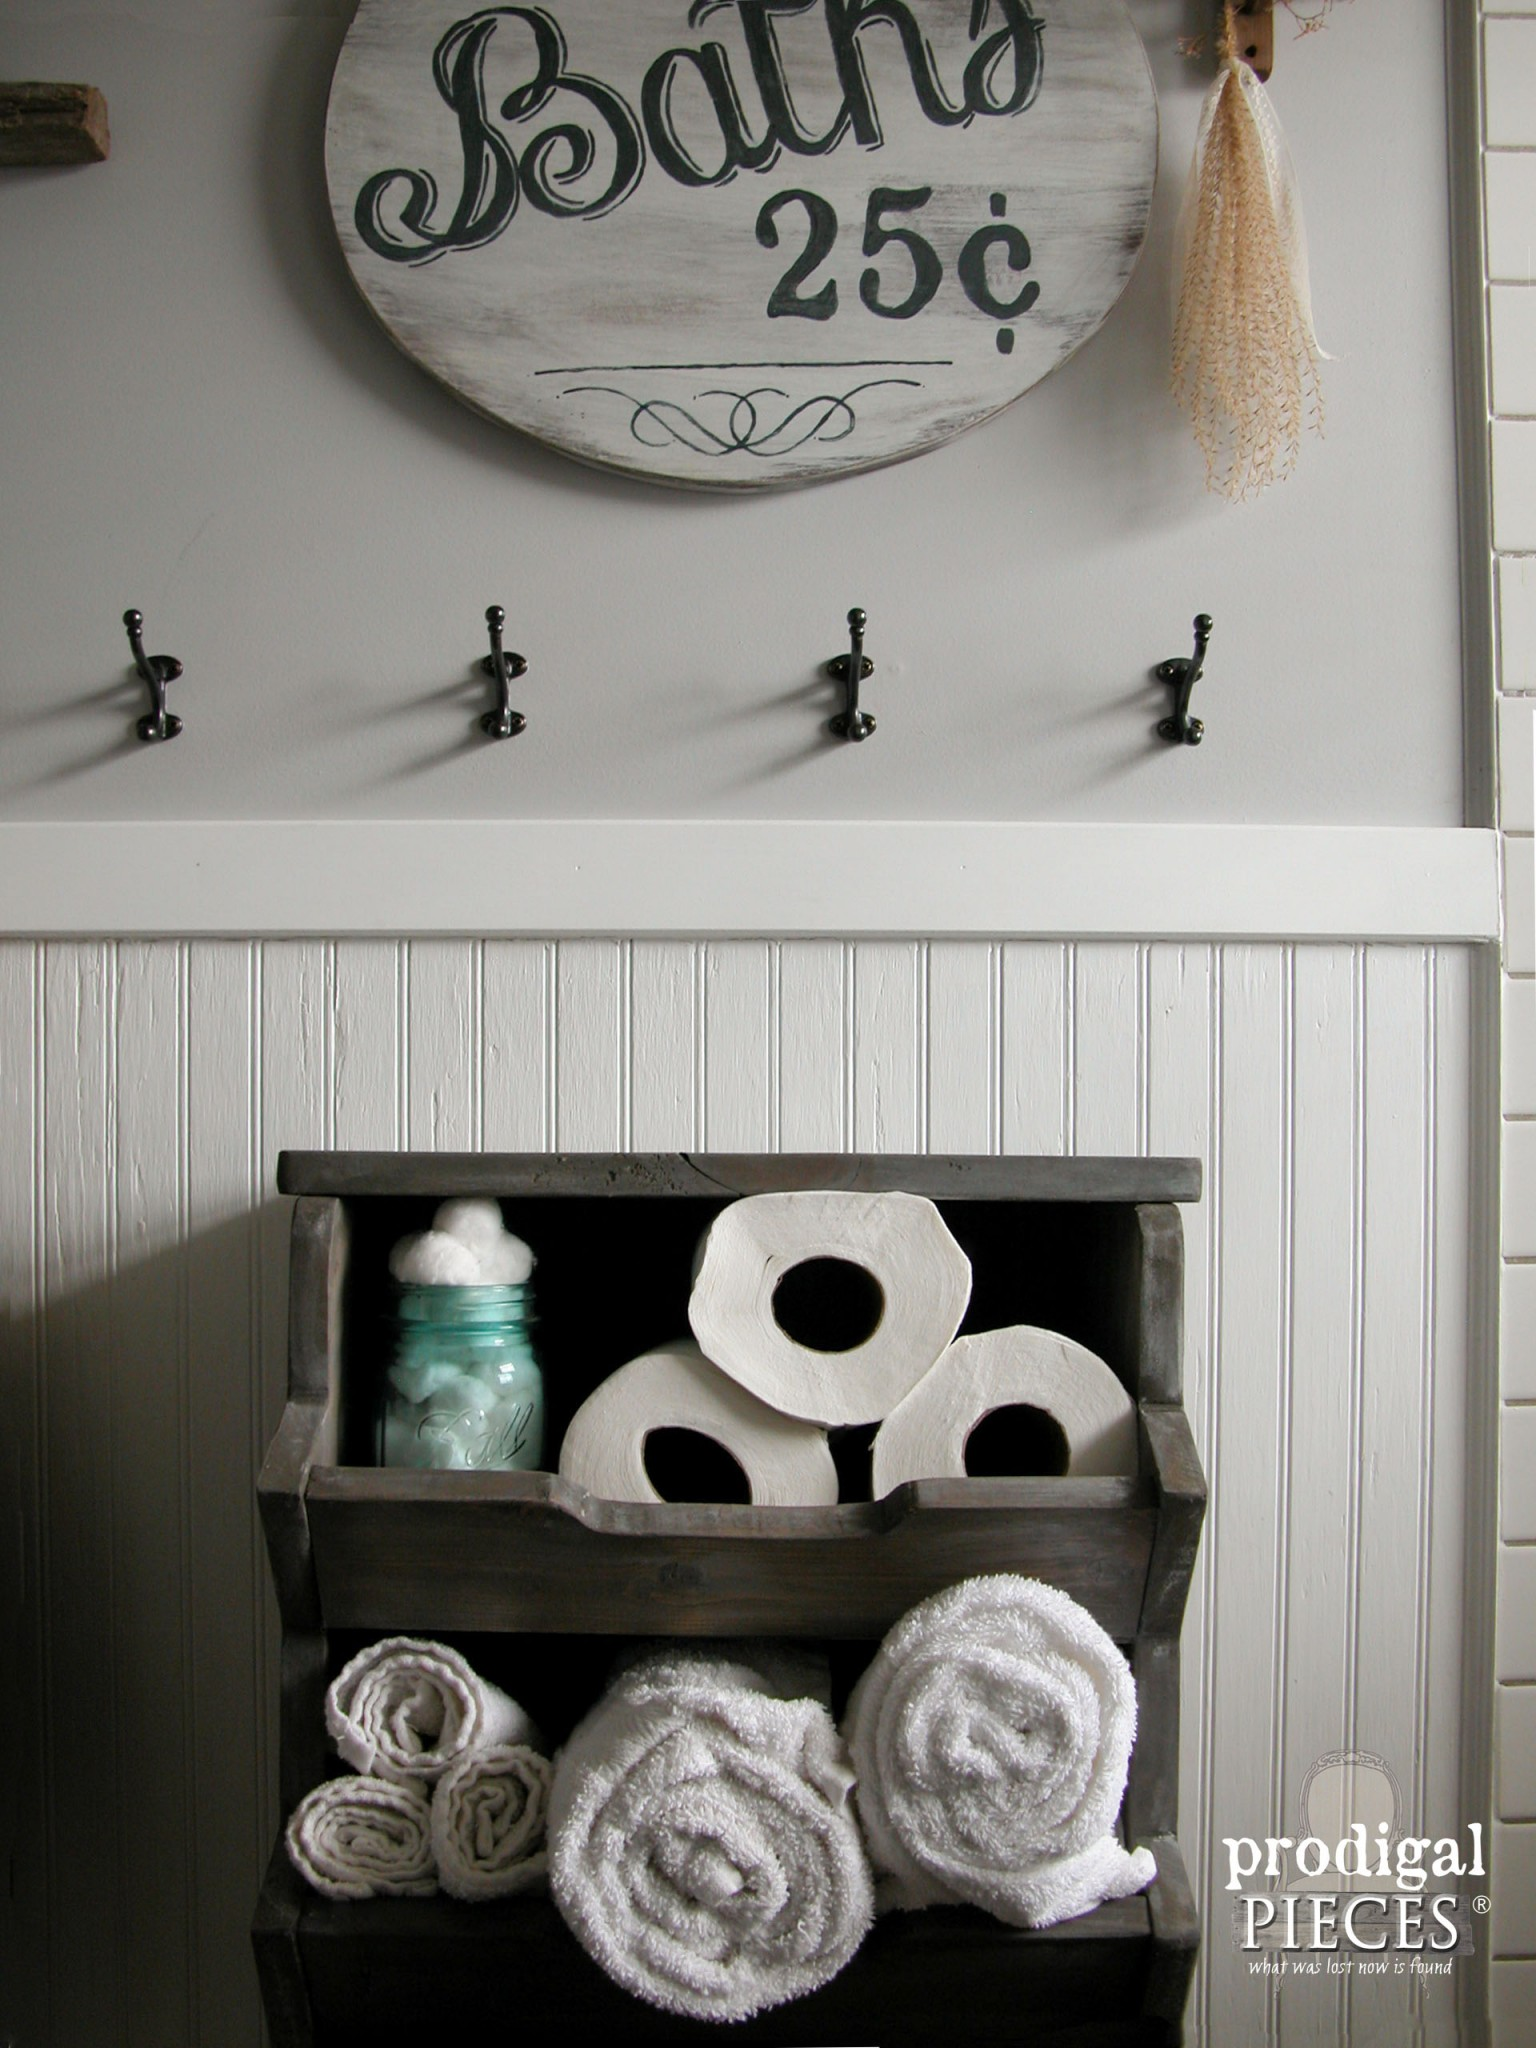 Bathroom Wooden Storage Bin Tutorial by Prodigal Pieces | www.prodigalpieces.com